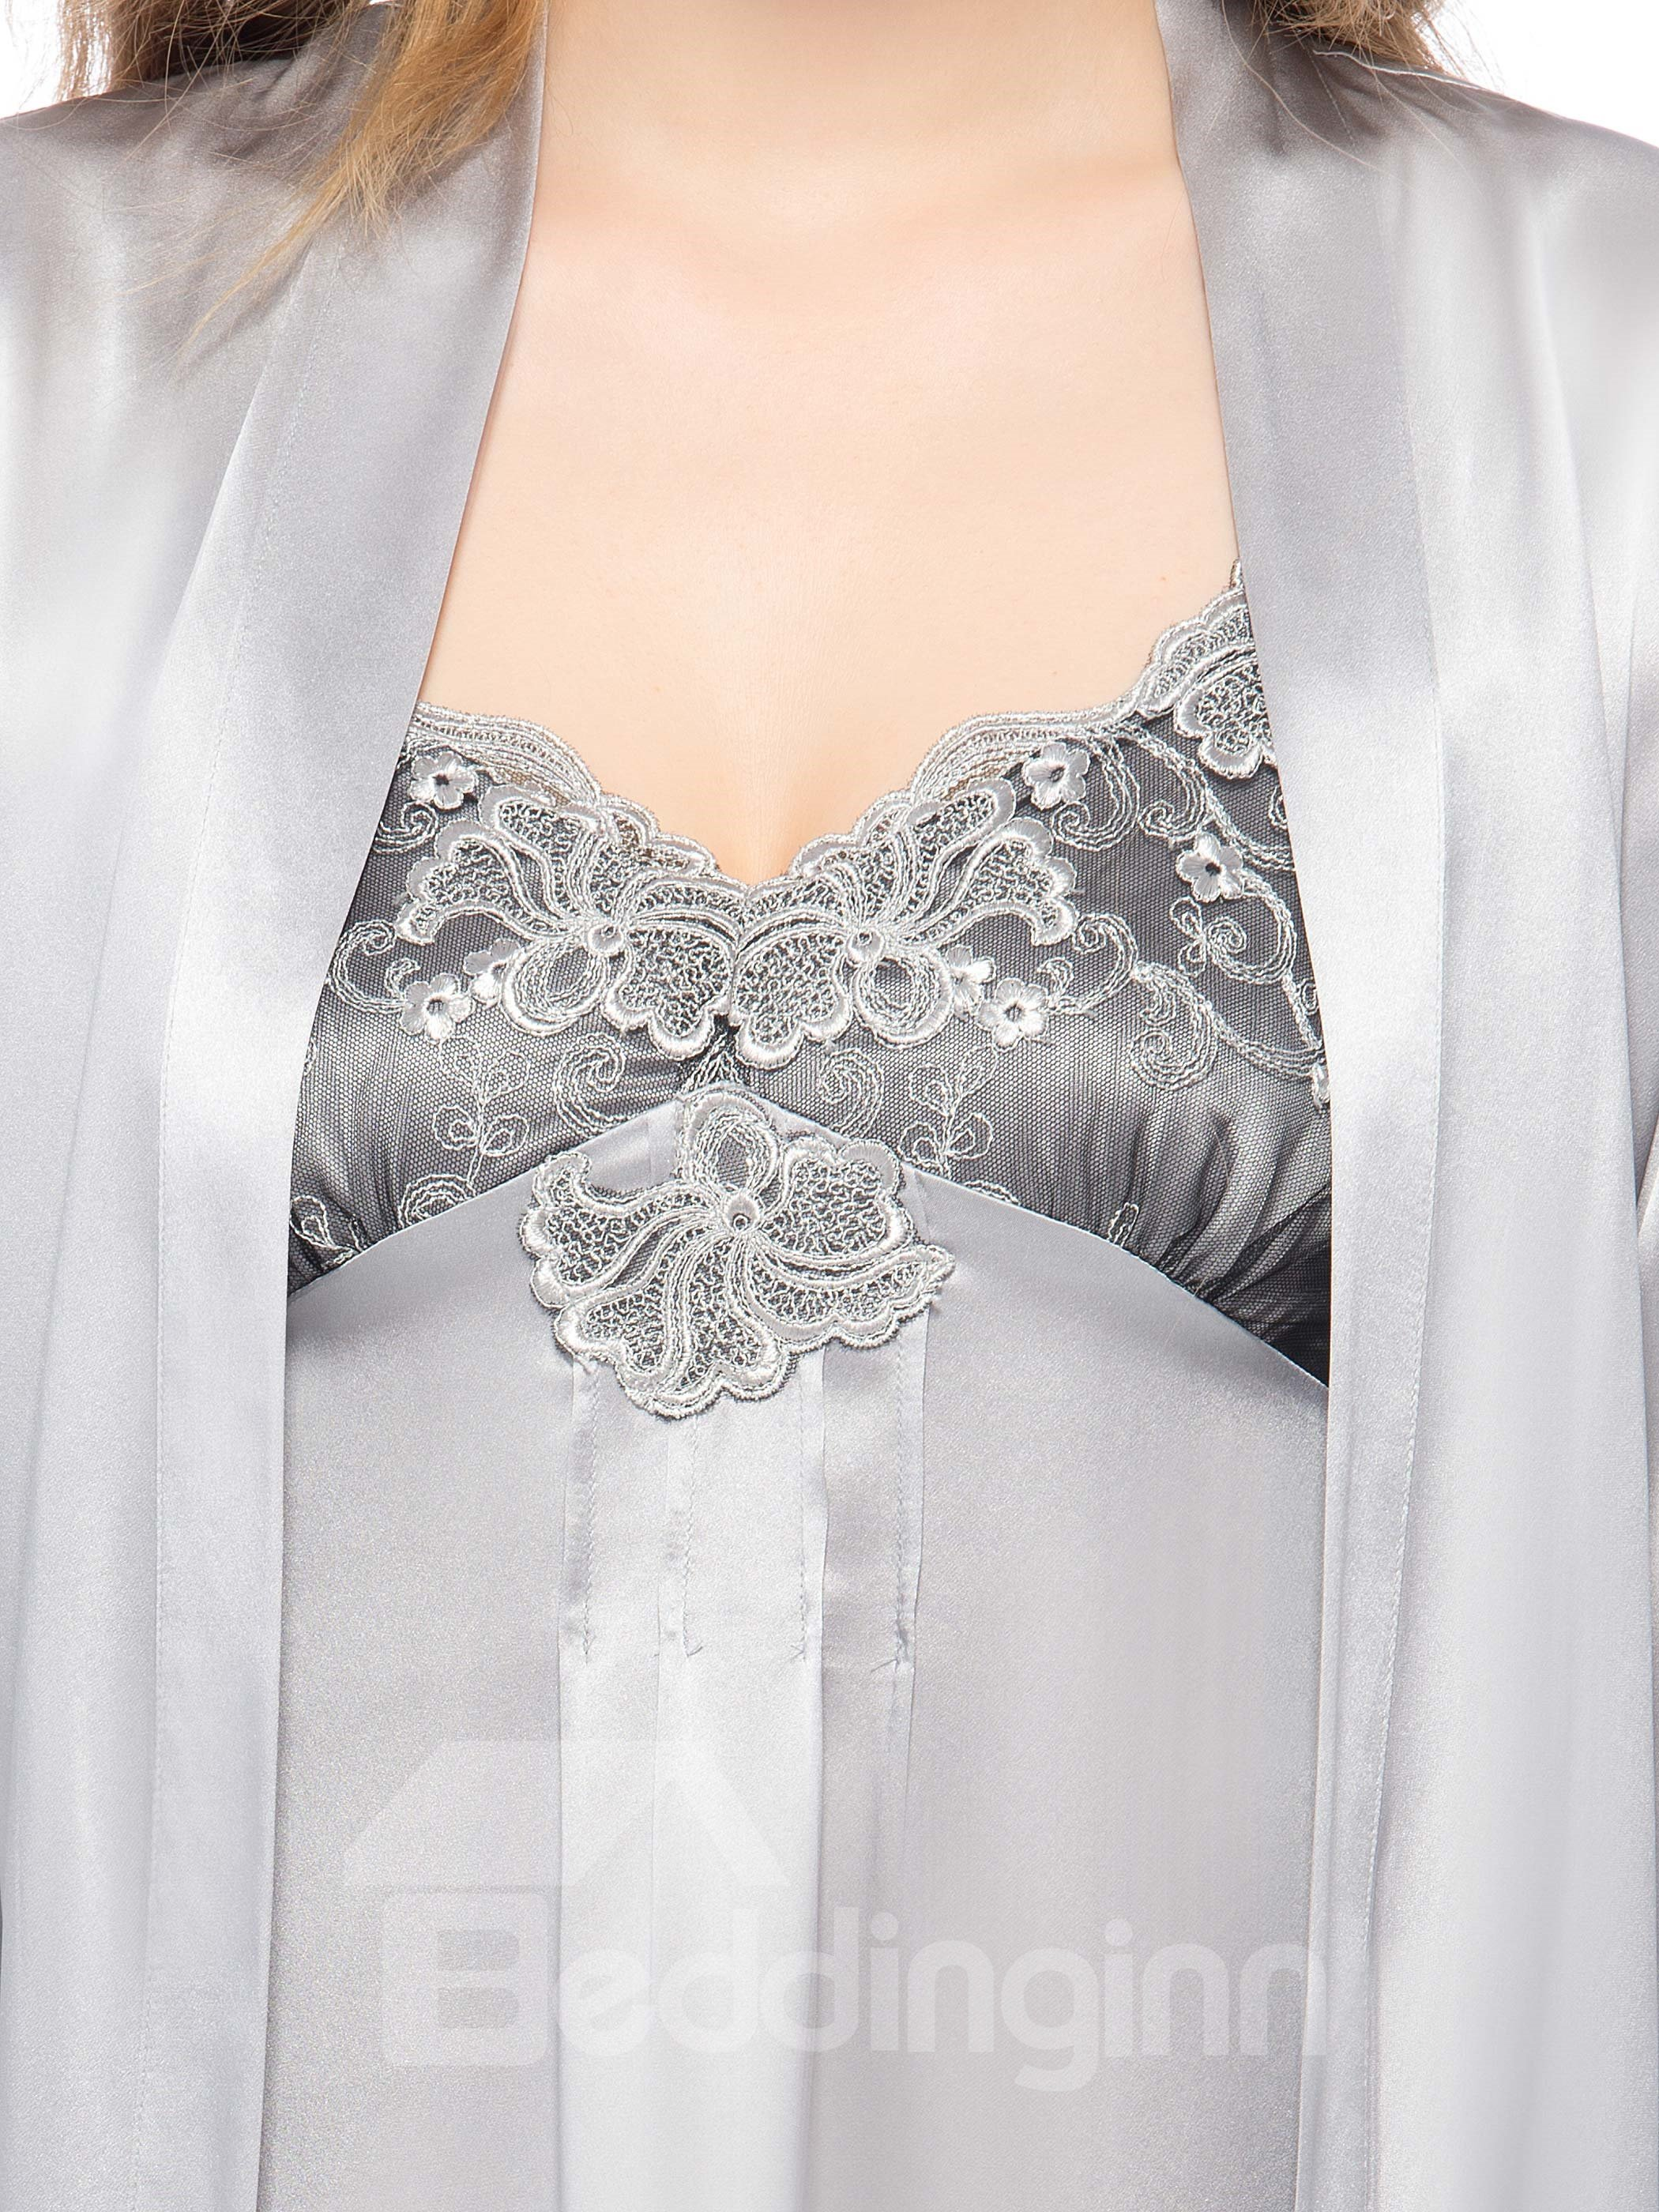 Wonderful Lace Trim Spaghetti Strap Gray Silk Robe Set